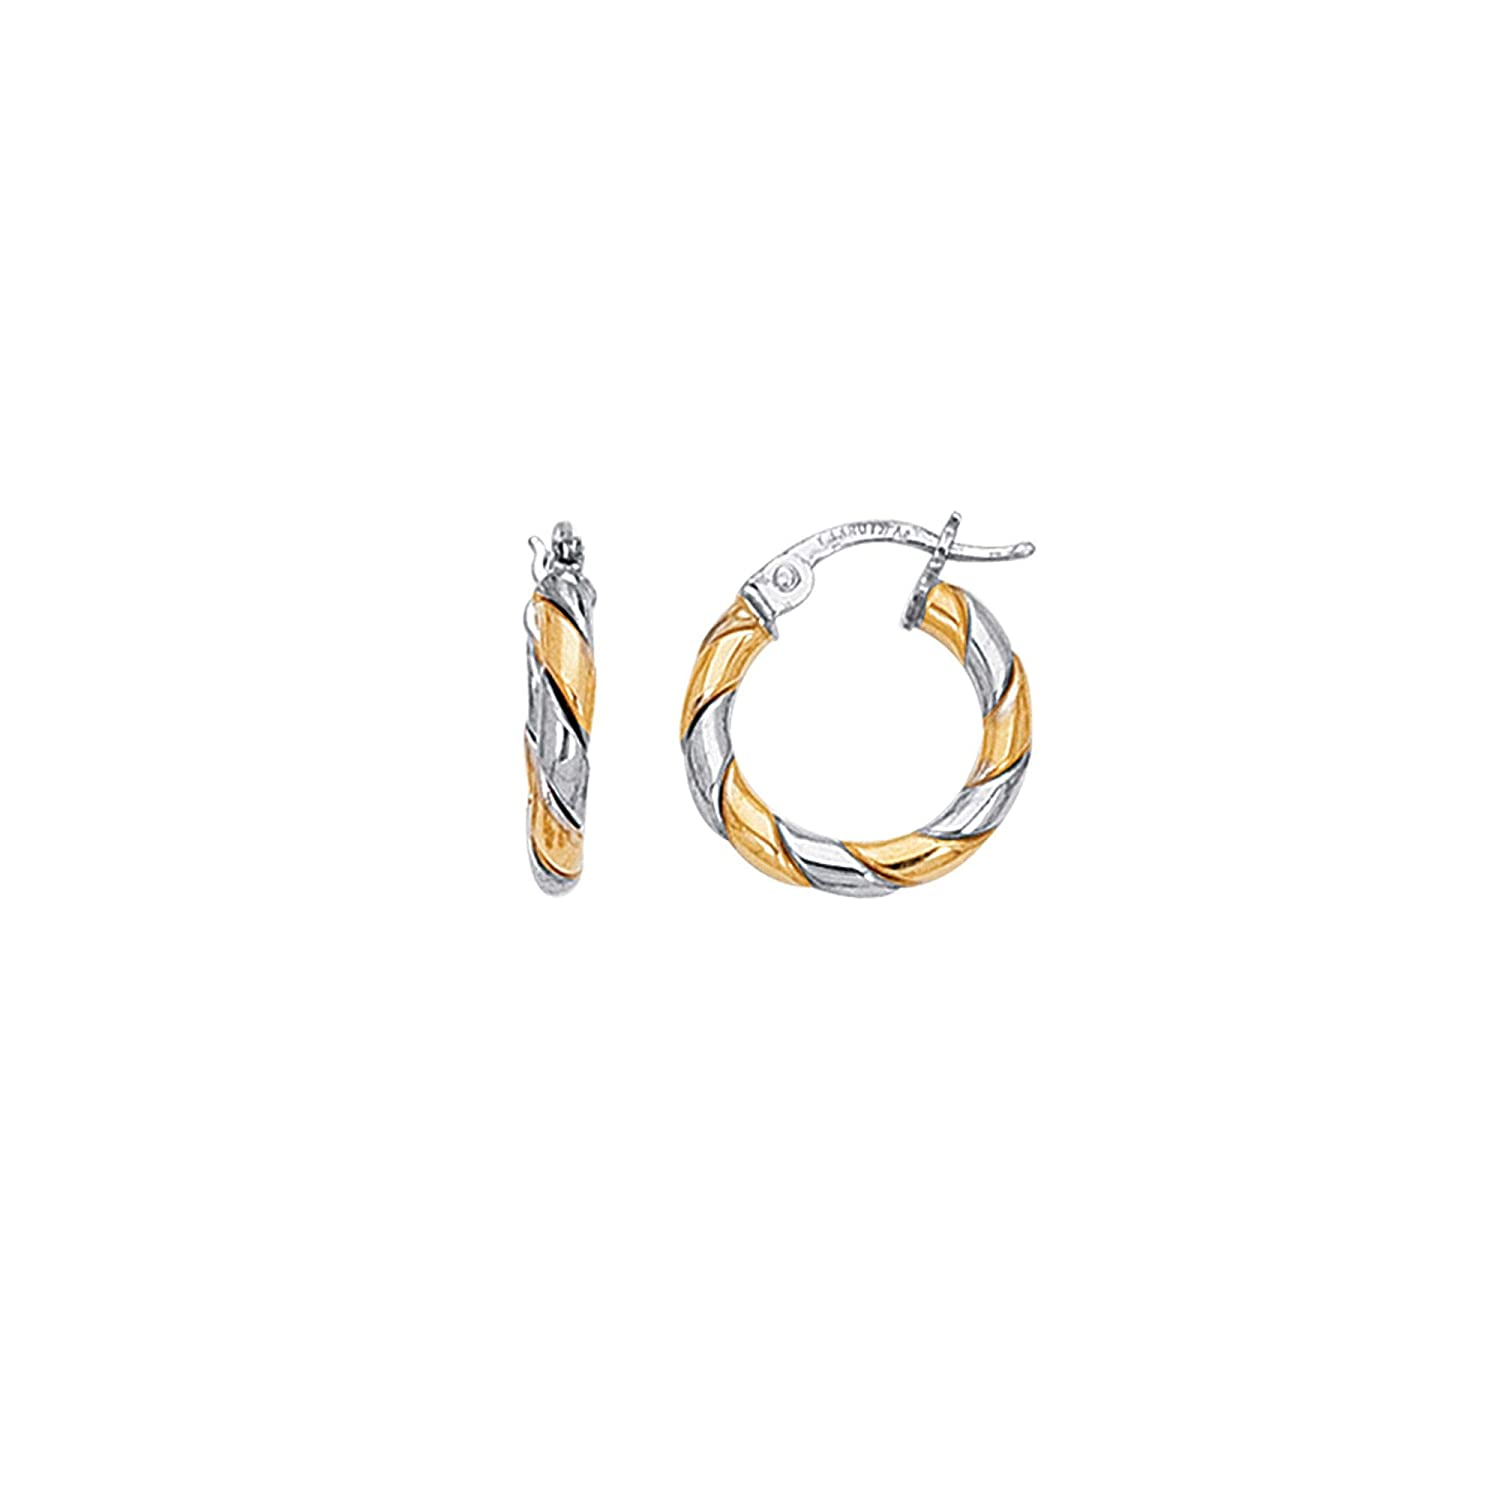 14K Yellow /& White Gold Shiny Two Tone Small Twisted Hoop Earrings with Hinged by IcedTime